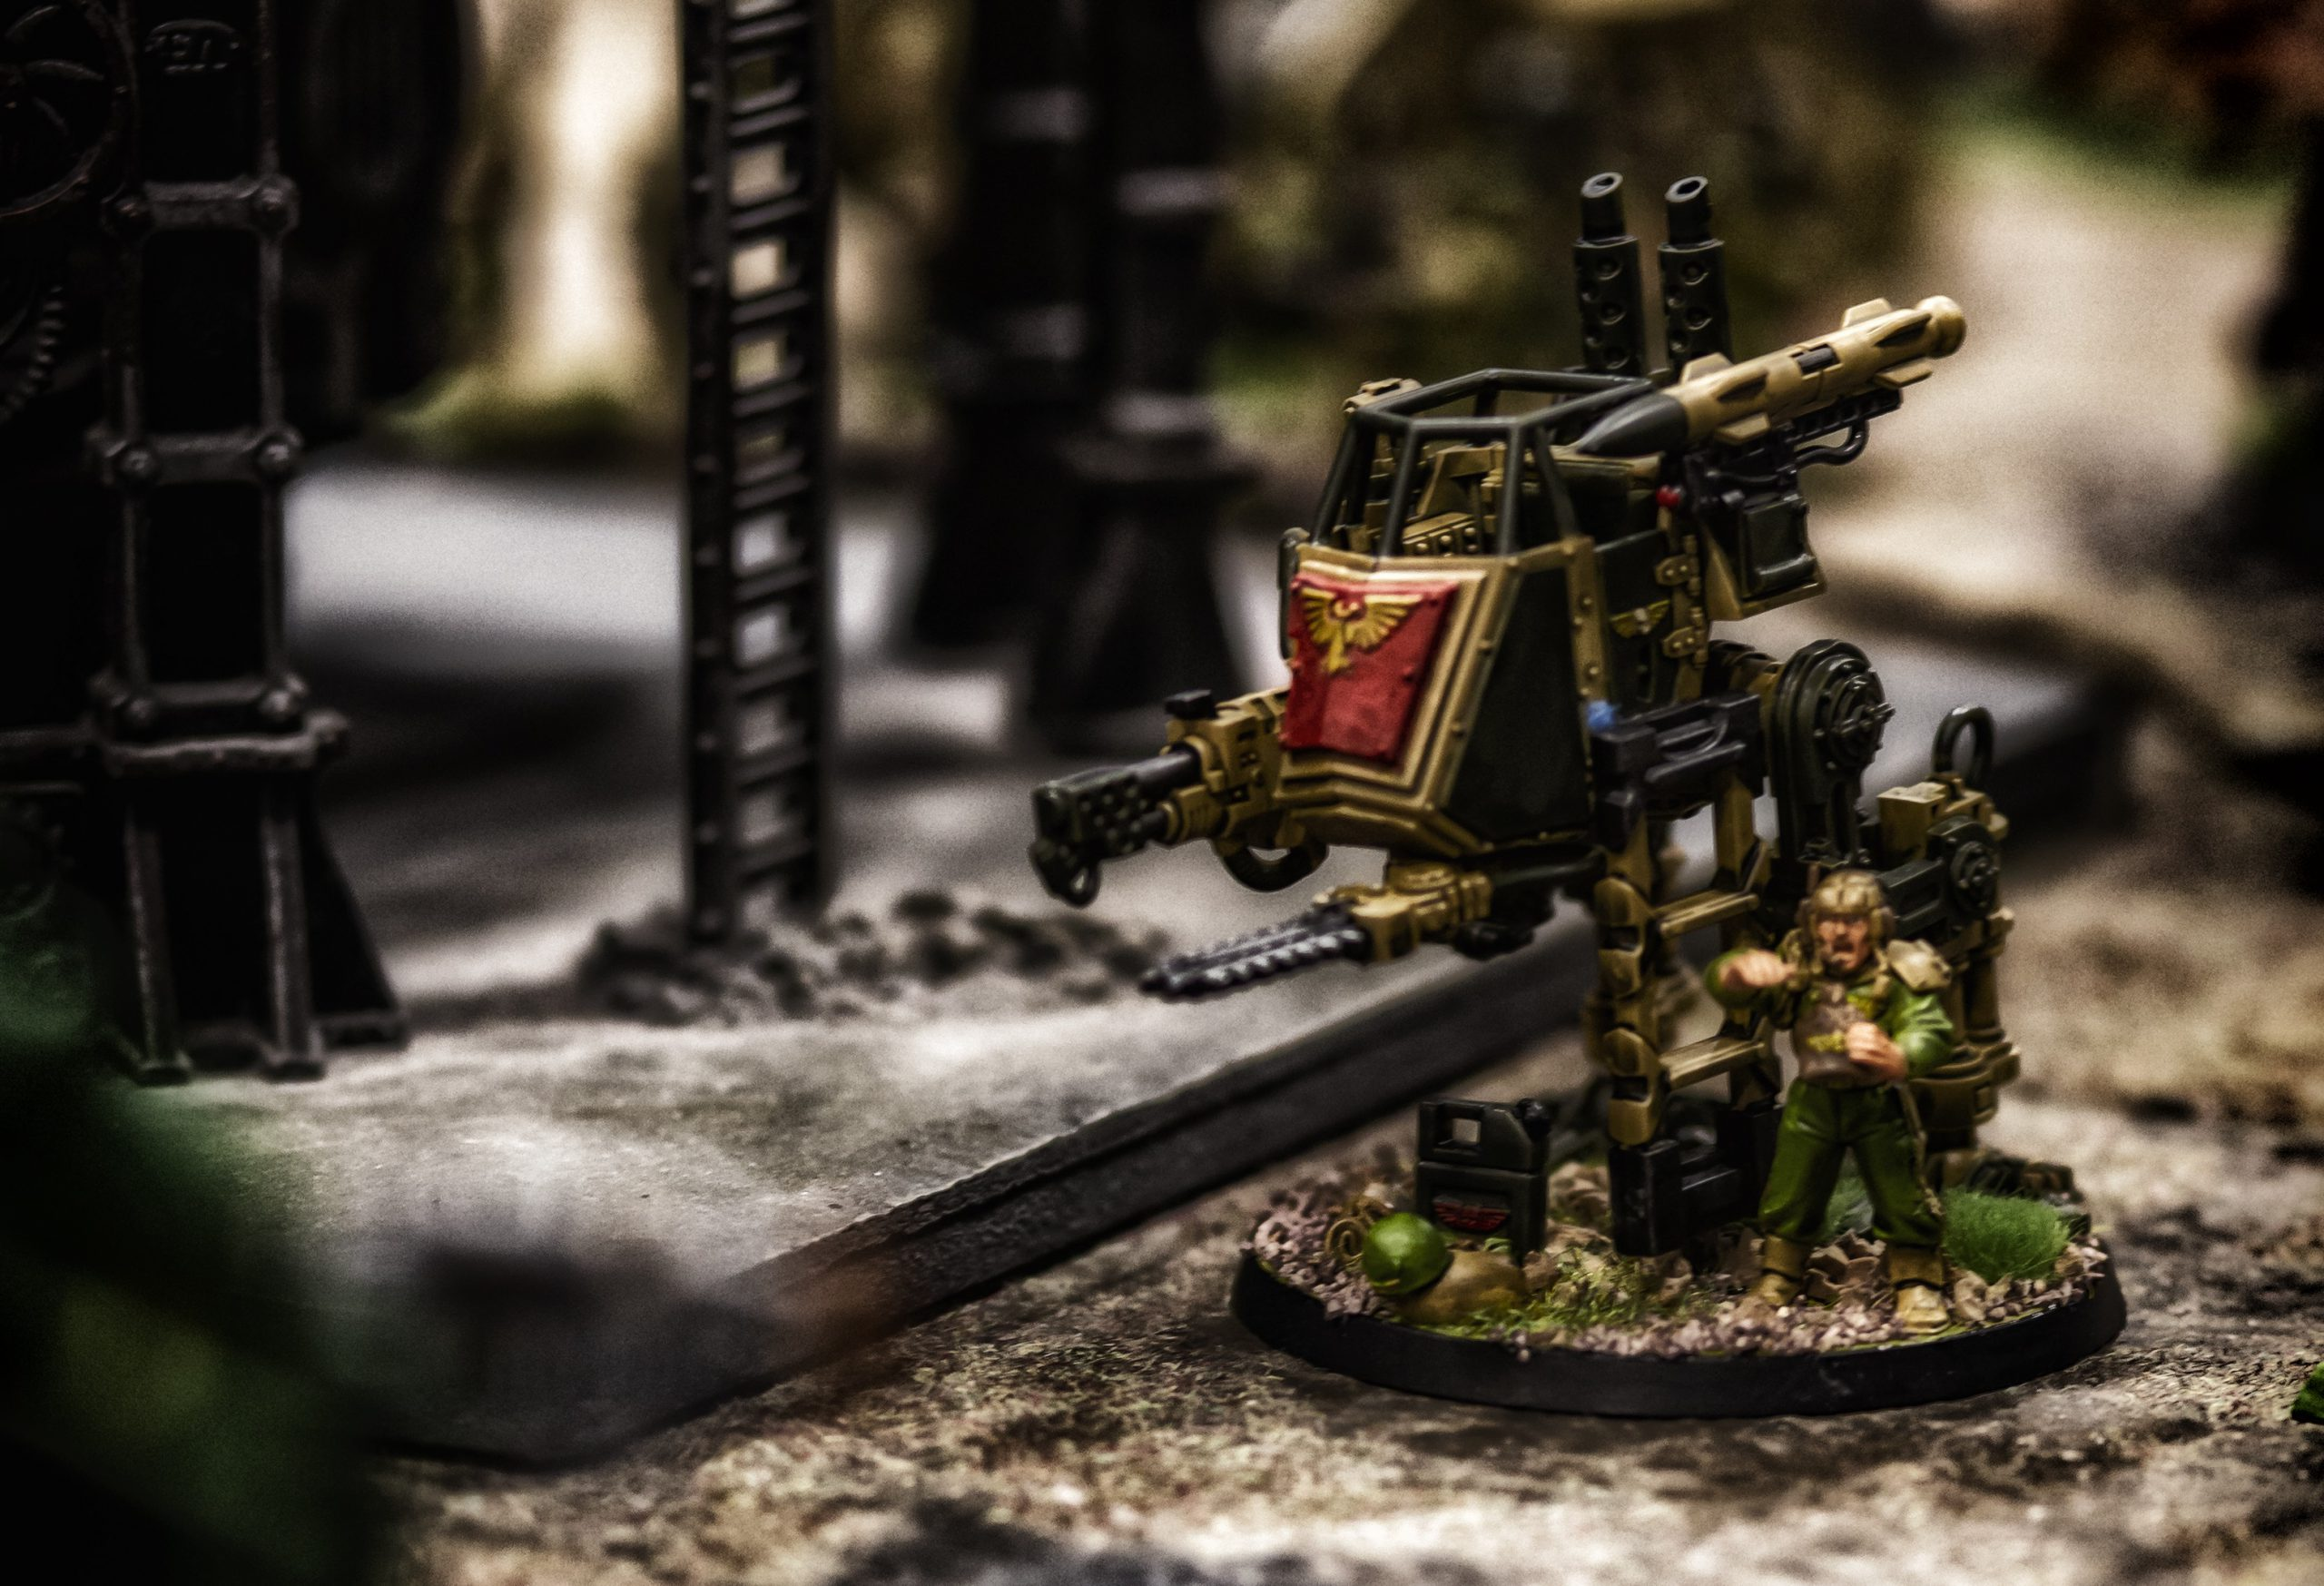 An Imperial sentinel pilot steps out of his machine